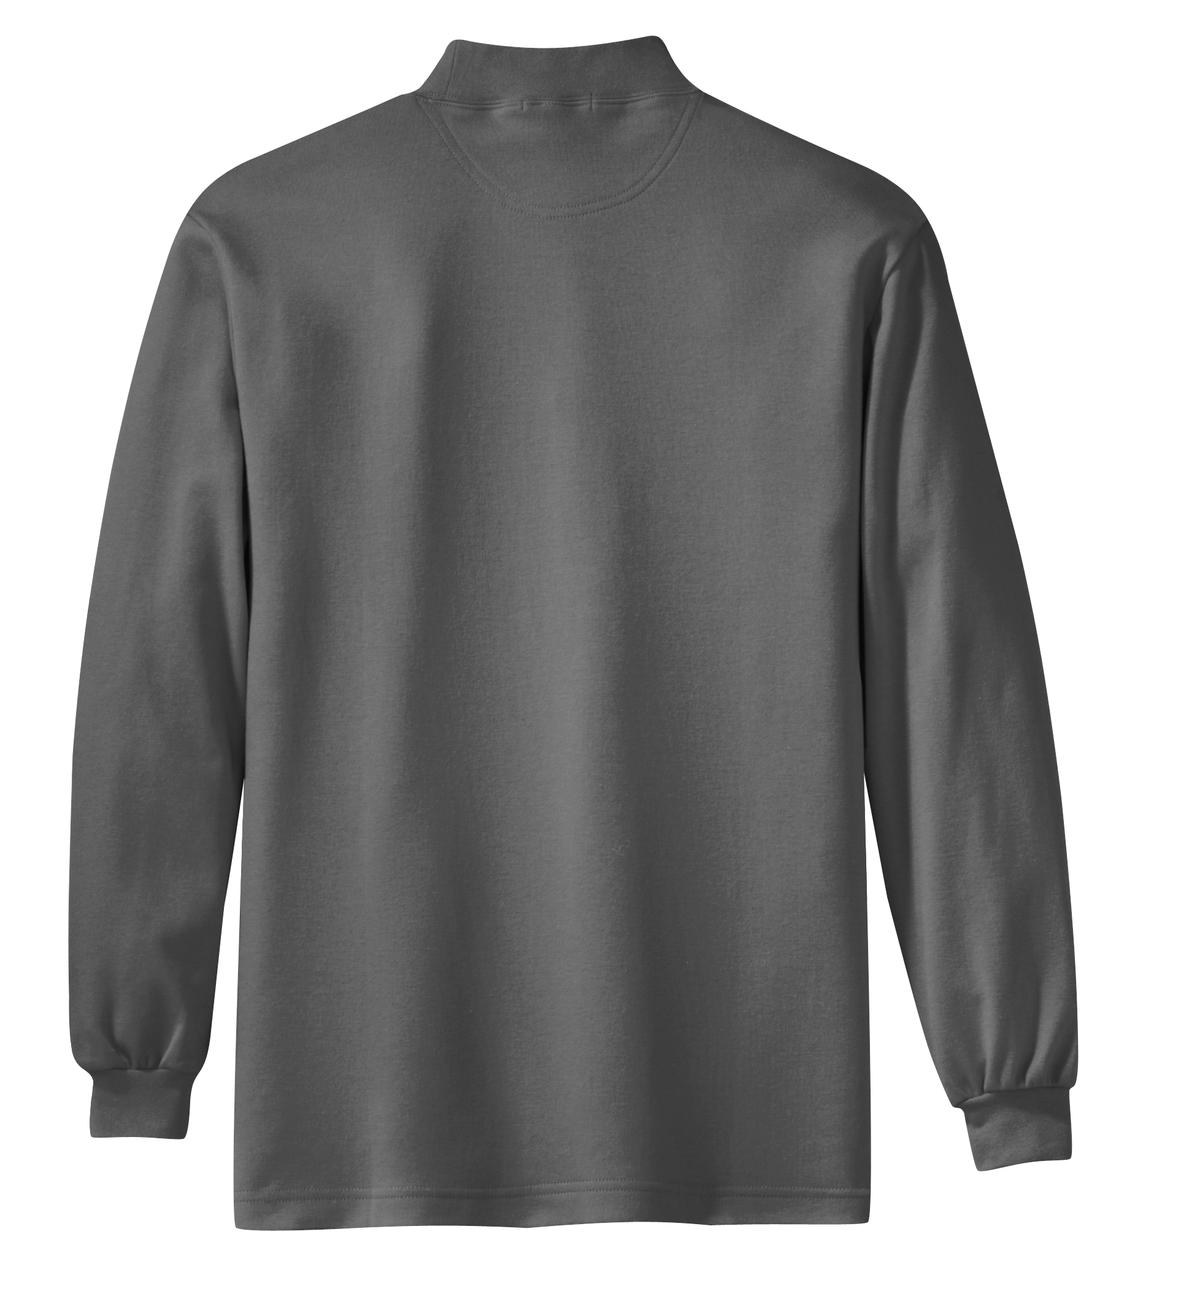 Mafoose Men's Interlock Knit Mock Turtleneck Sweaters Steel Grey-Back